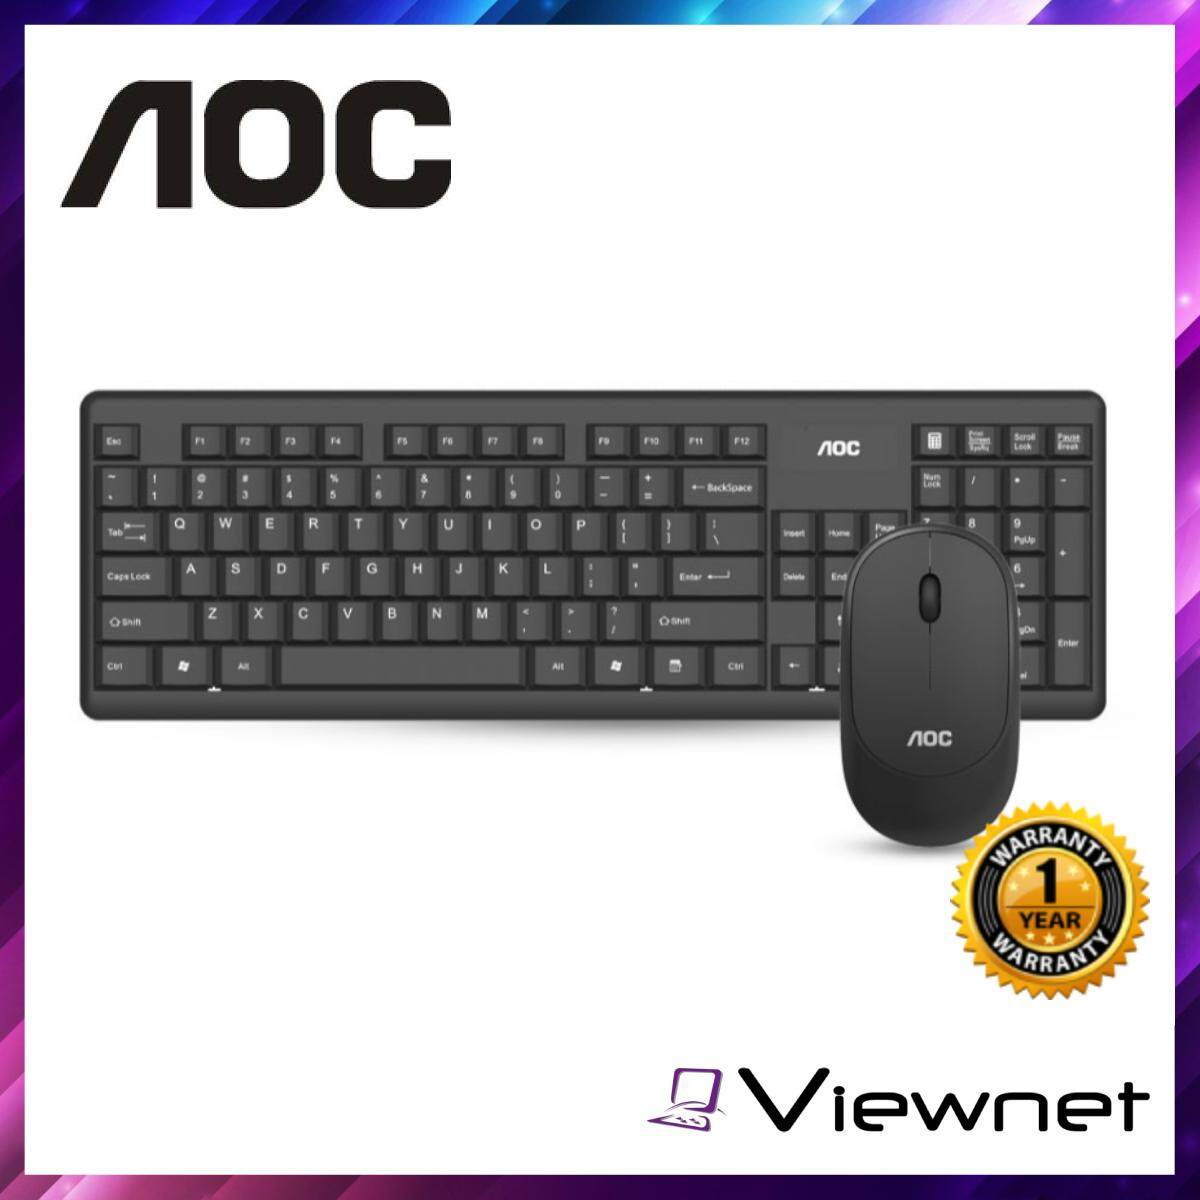 AOC KM200 Wireless Keyboard and Mouse Combo, Bluetooth, Quiet clicks & Anti-Skid Roller, Simple & Convenient